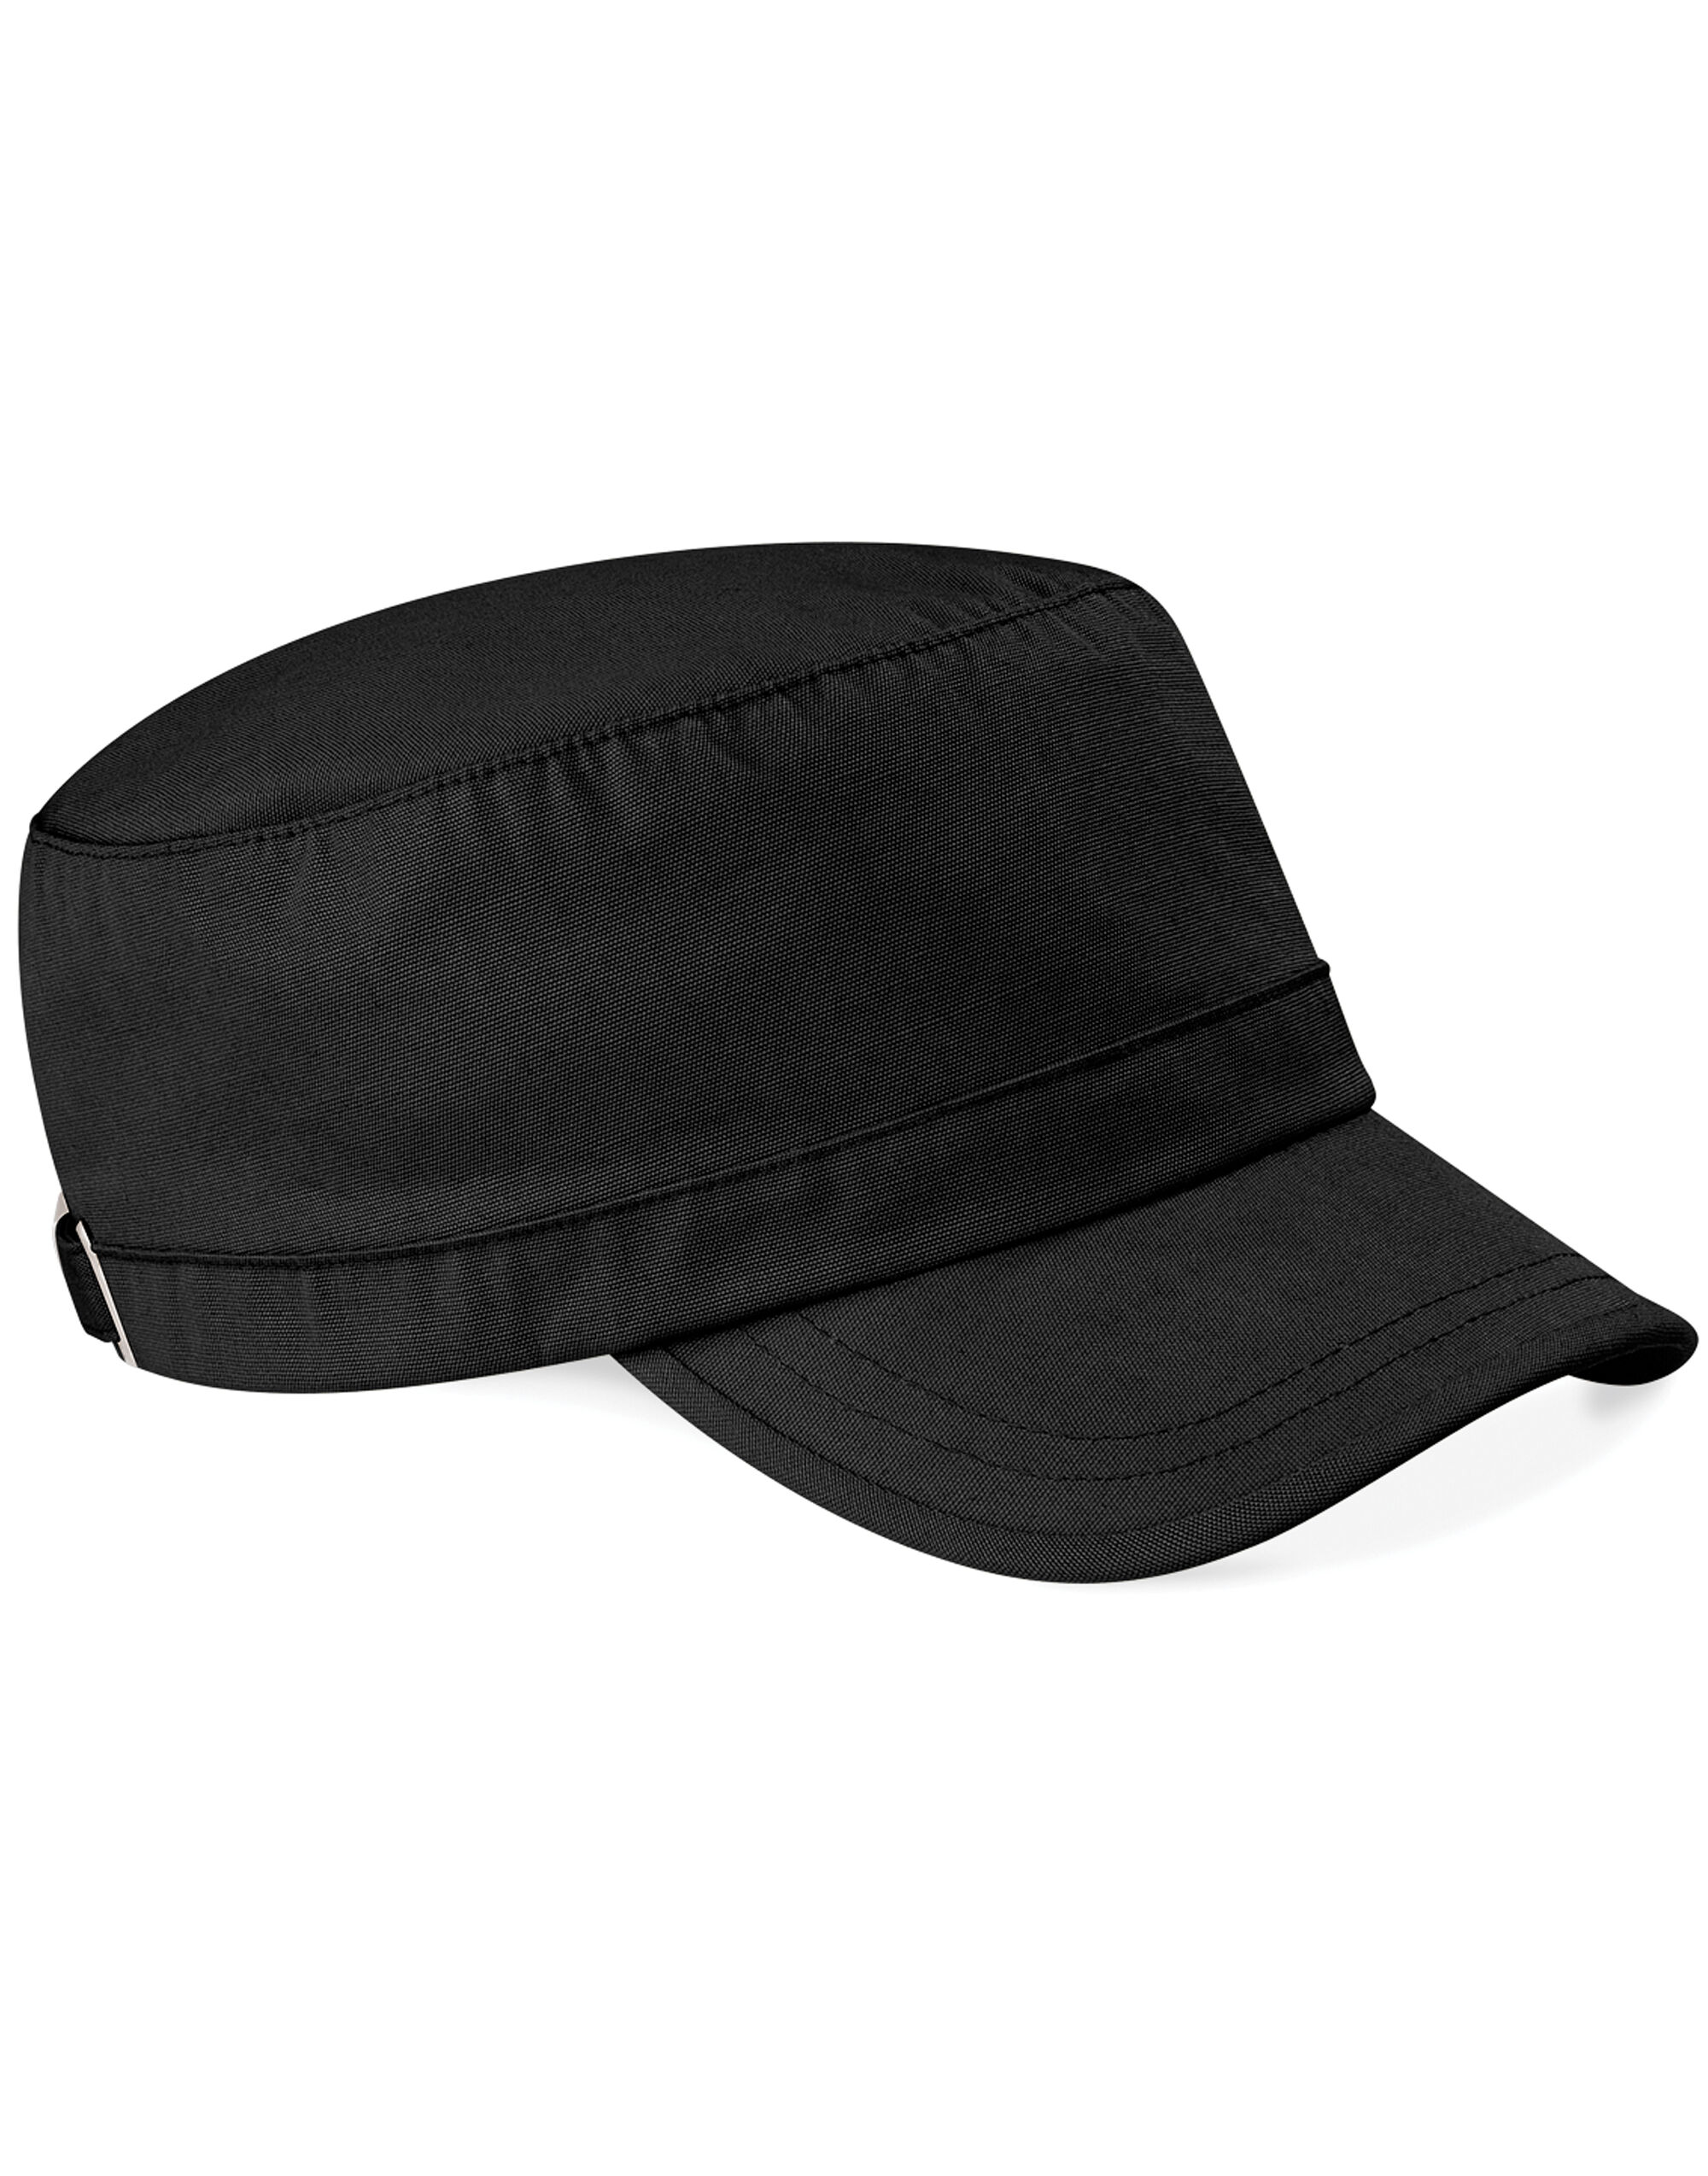 Beechfield Peaked Beanie Caps /& Hats Etc All Sizes and Colours